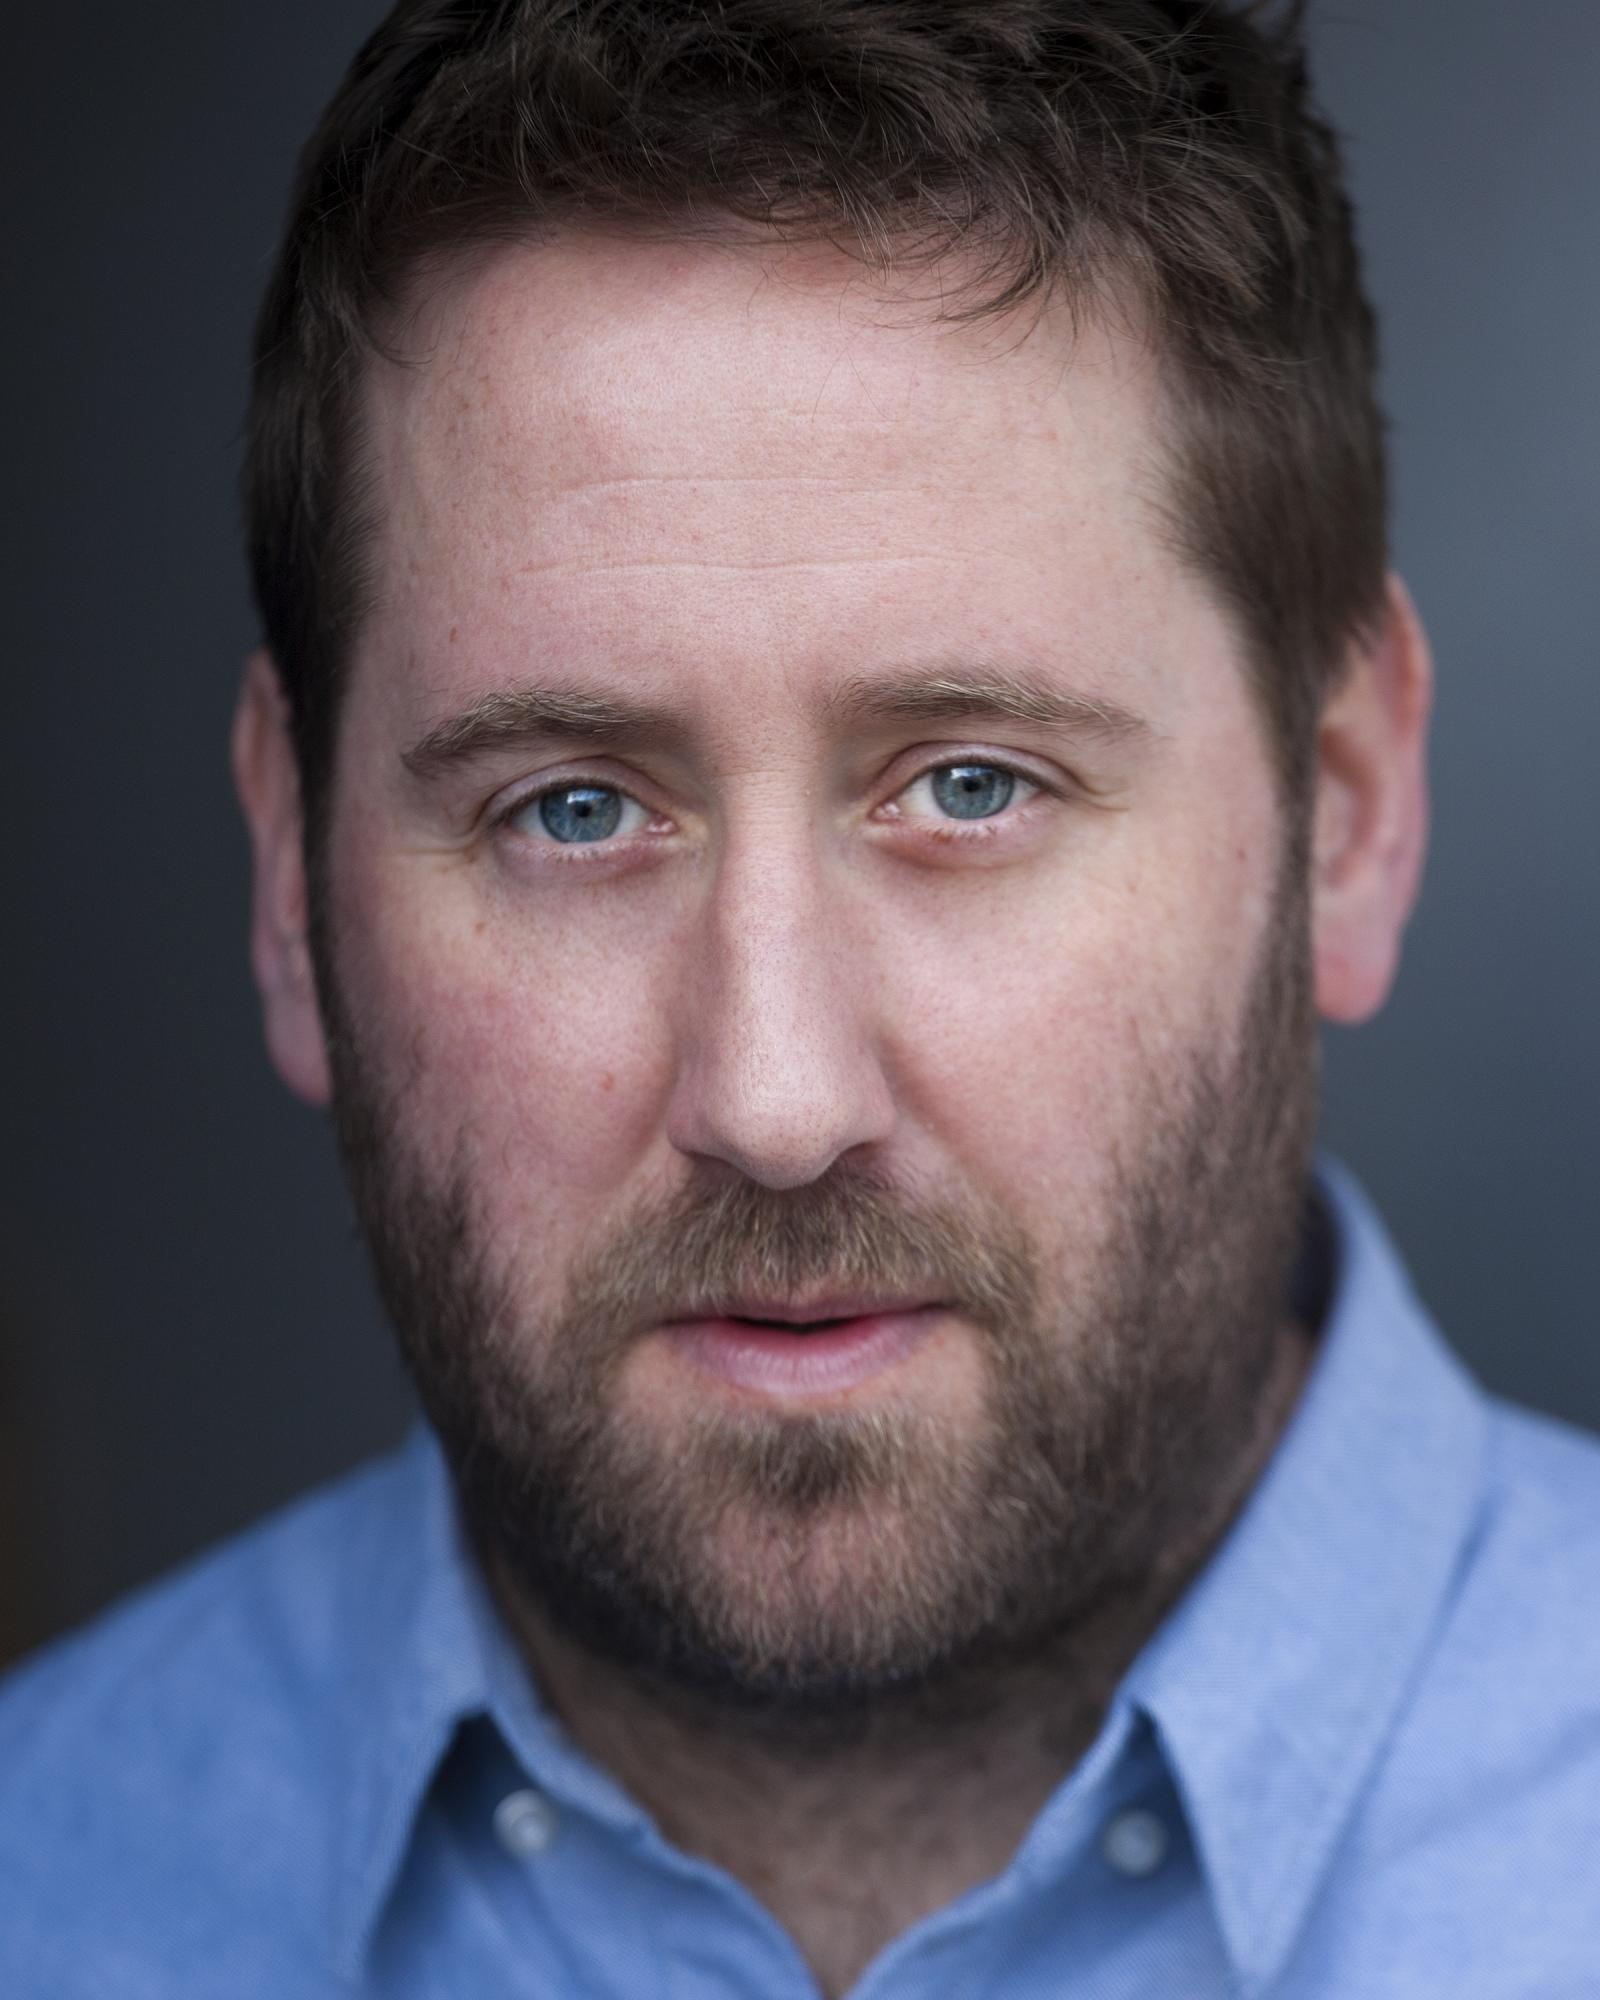 The 40-year old son of father (?) and mother(?) Jim Howick in 2020 photo. Jim Howick earned a  million dollar salary - leaving the net worth at  million in 2020